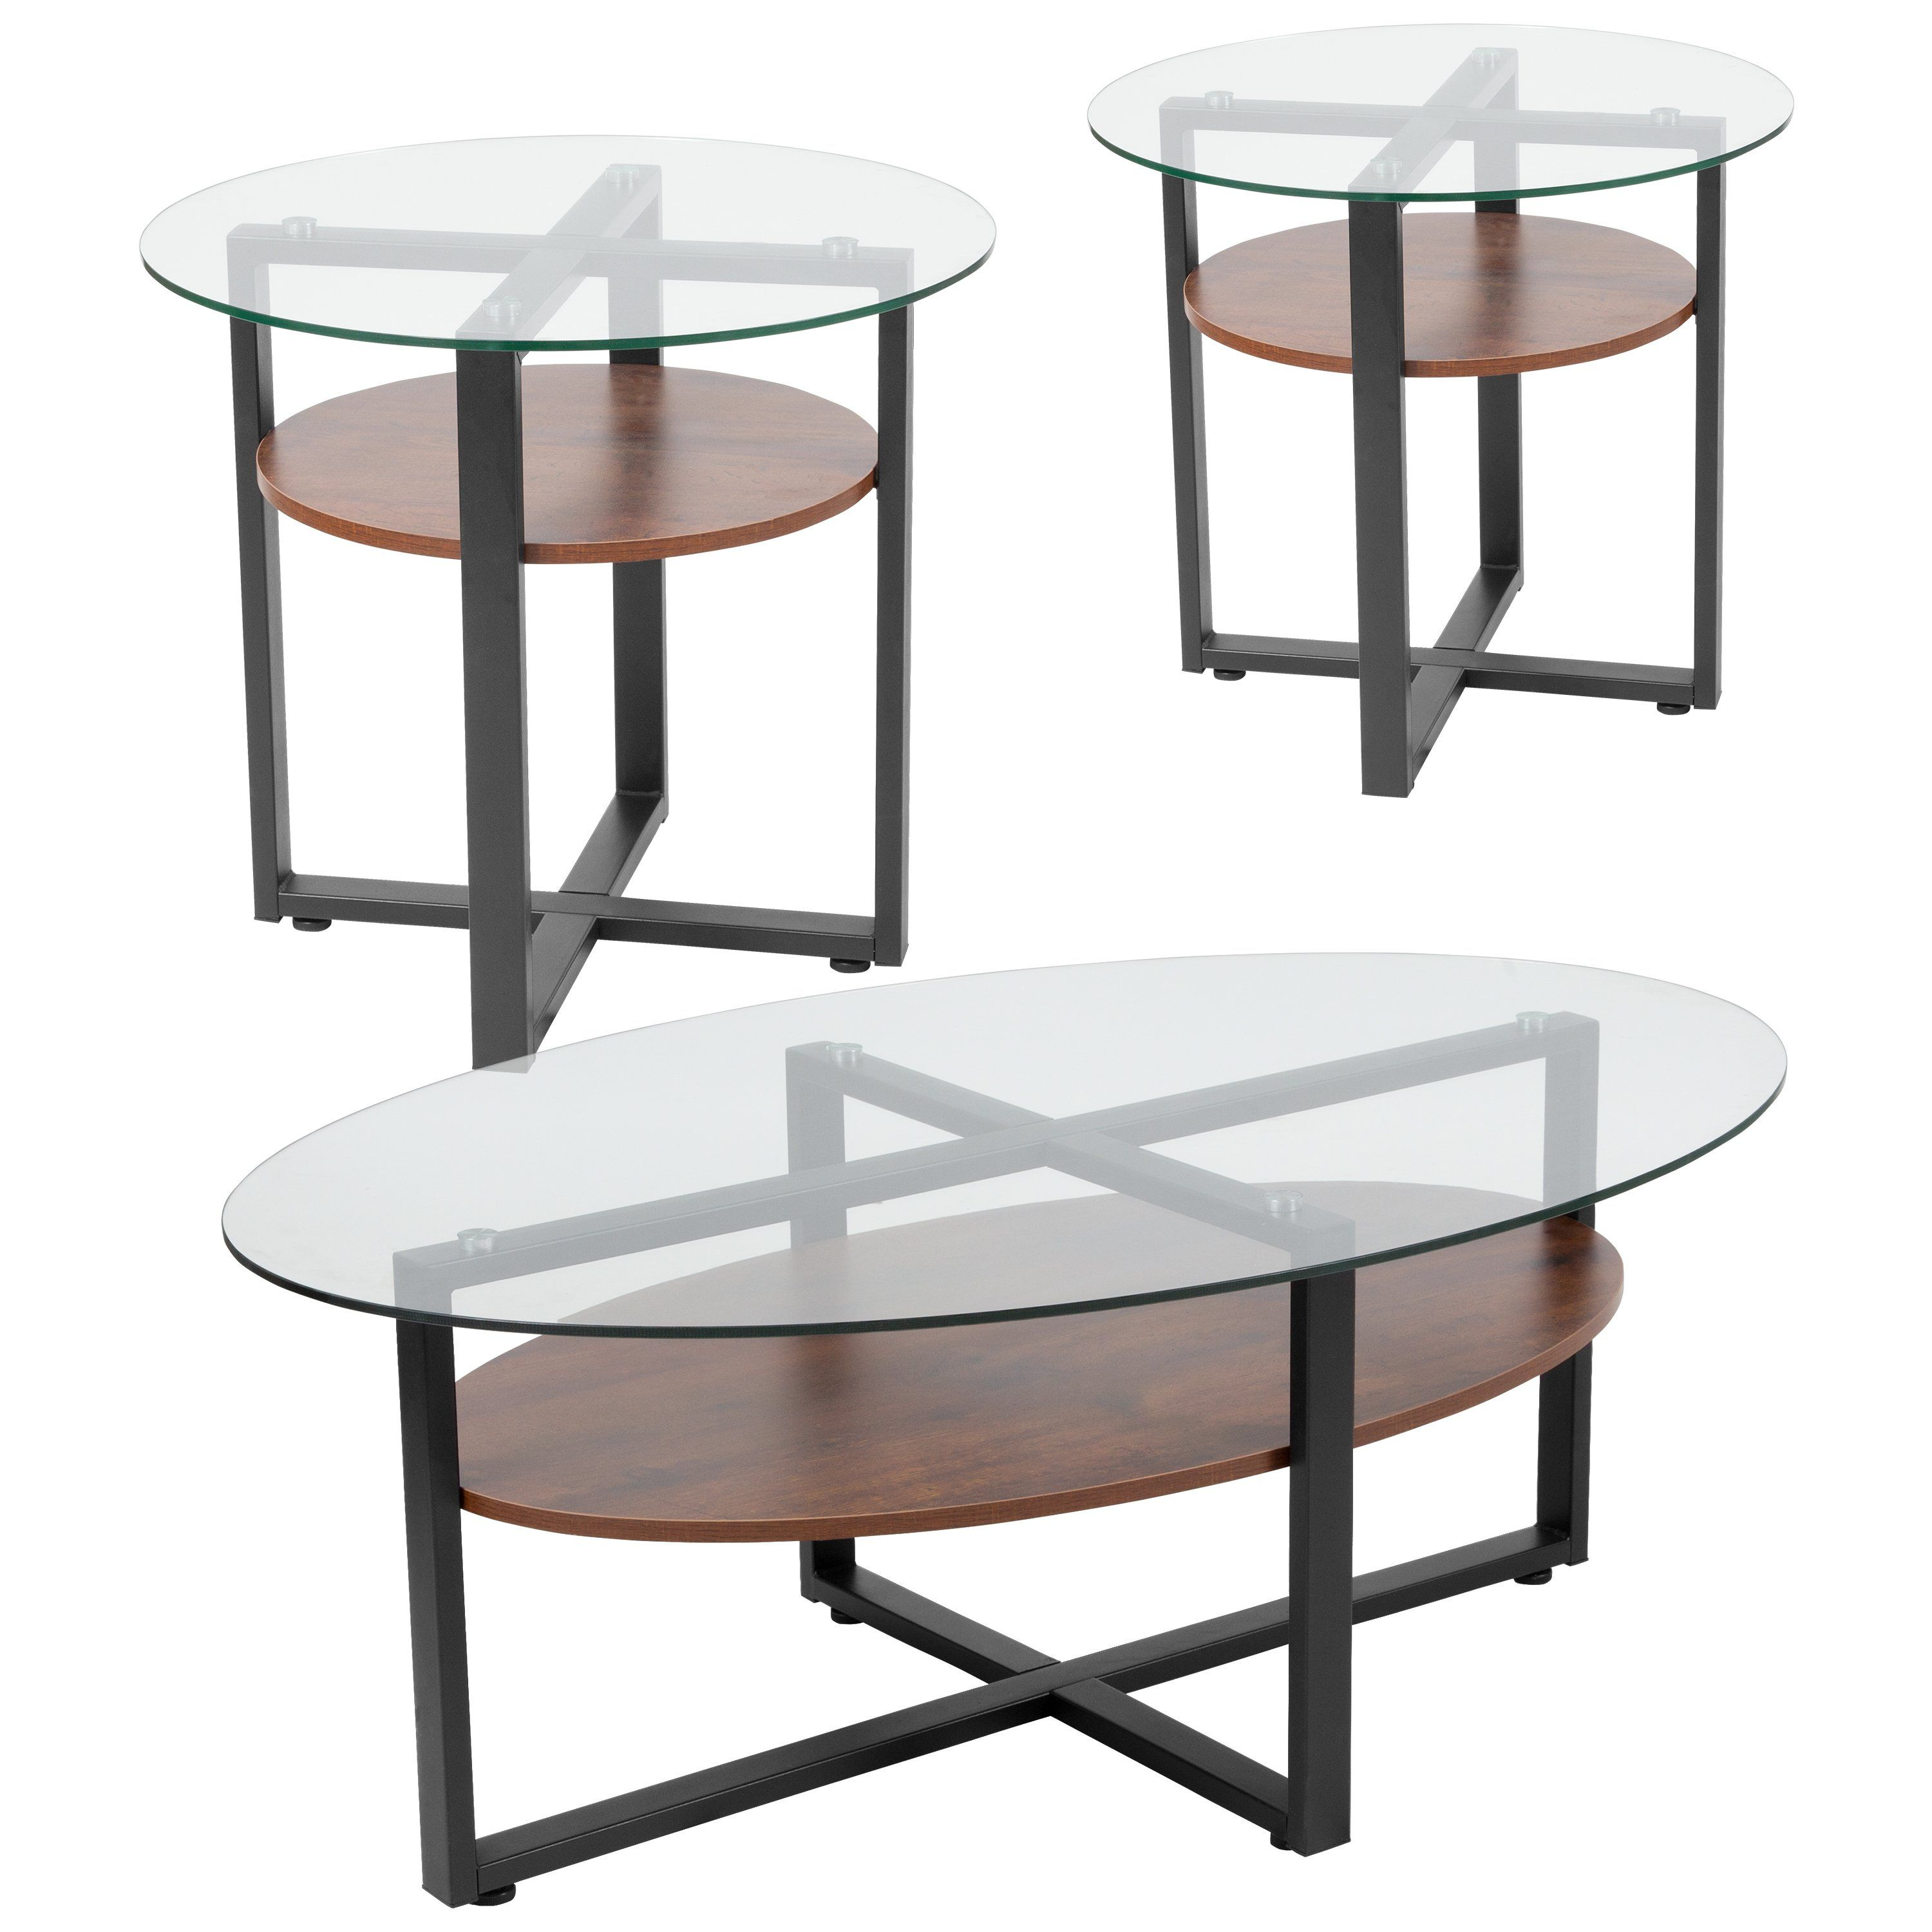 Princeton Collection 3 Piece Glass Table Set With Wood Finish And